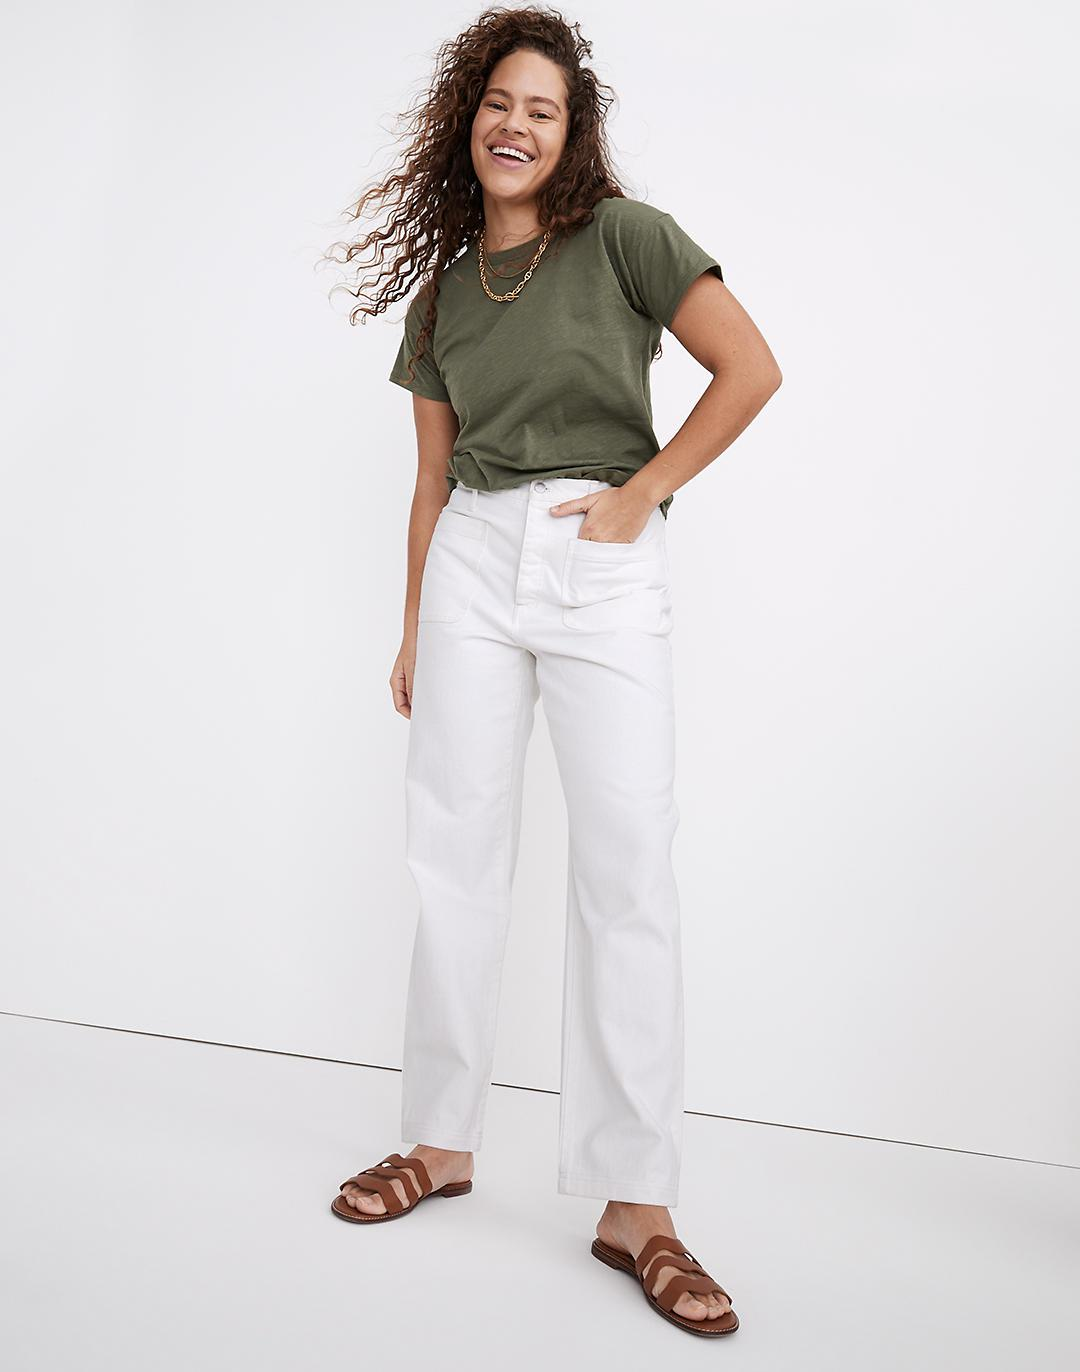 The Dadjean in Tile White: Patch Pocket Edition